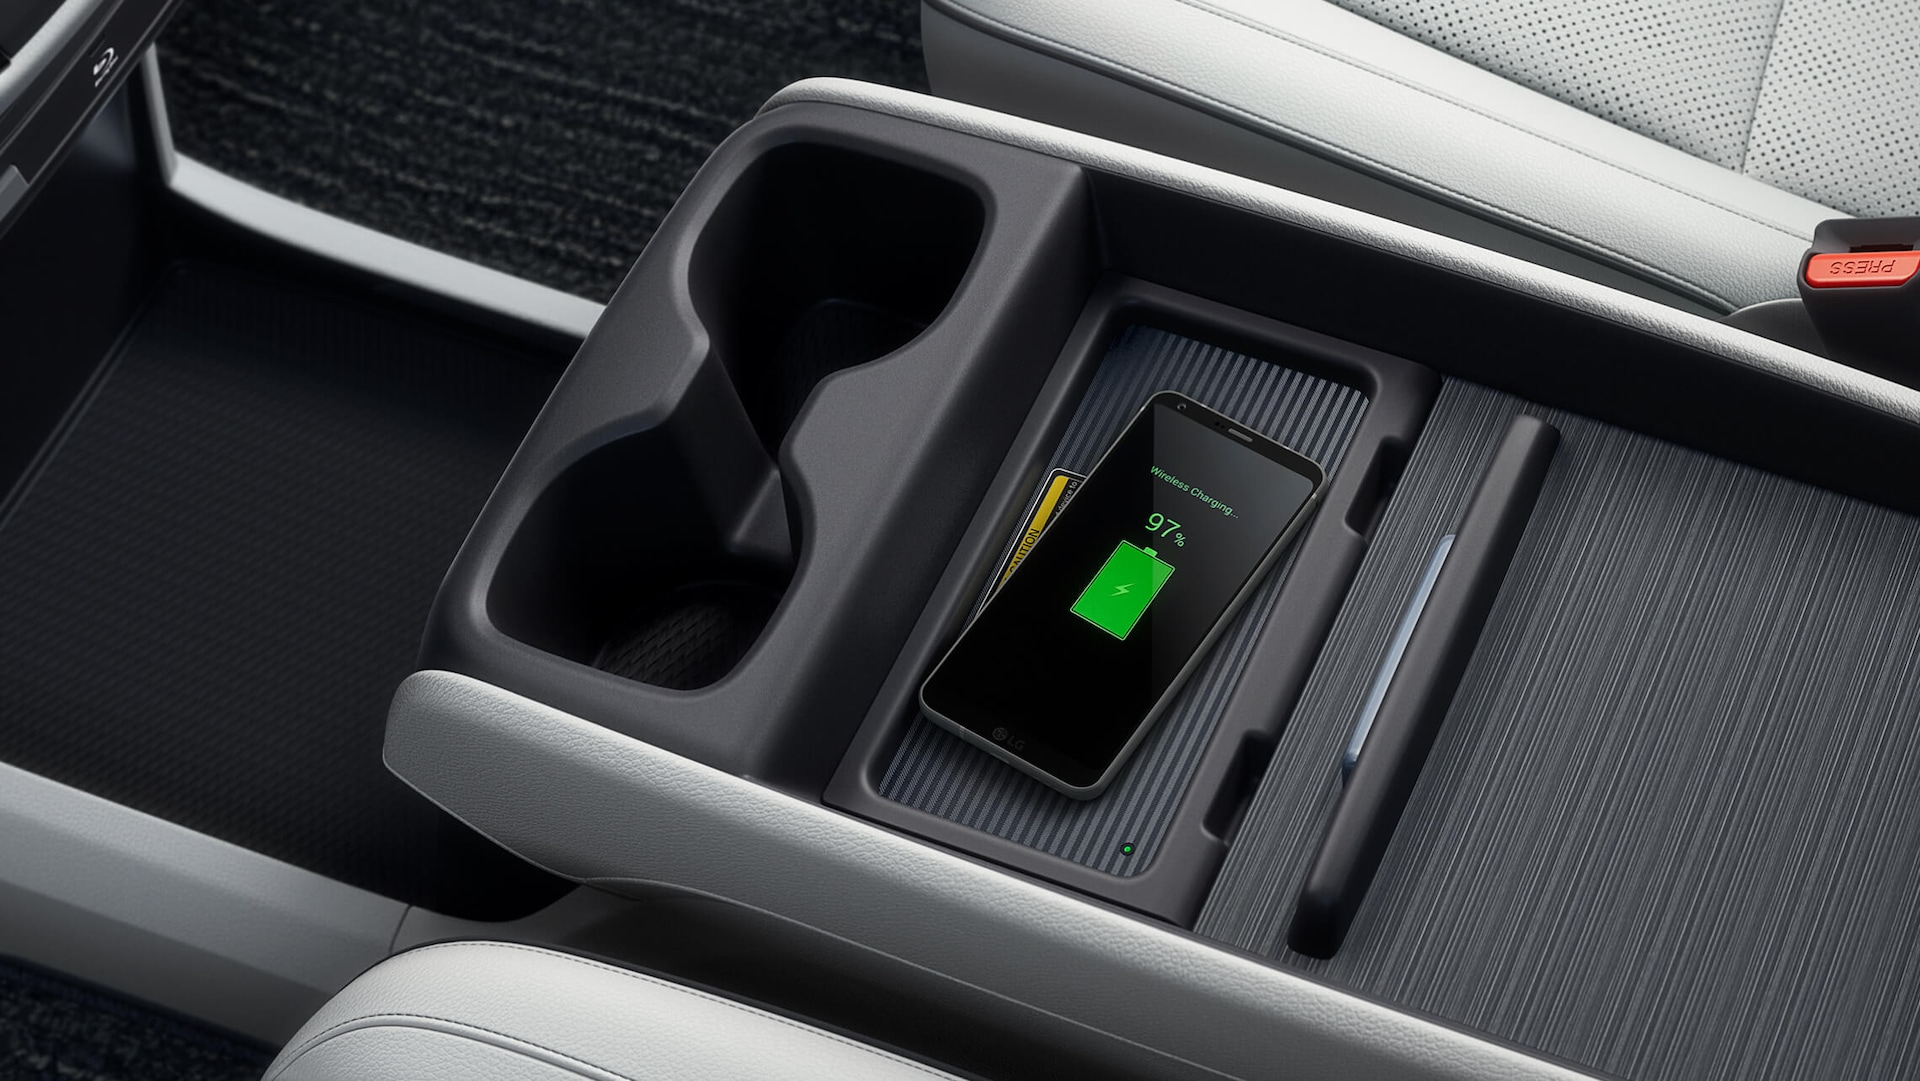 Interior overhead close-up view of center console in the 2022 Honda Odyssey Elite with Beige Leather, with mobile phone charging on the wireless phone charger.